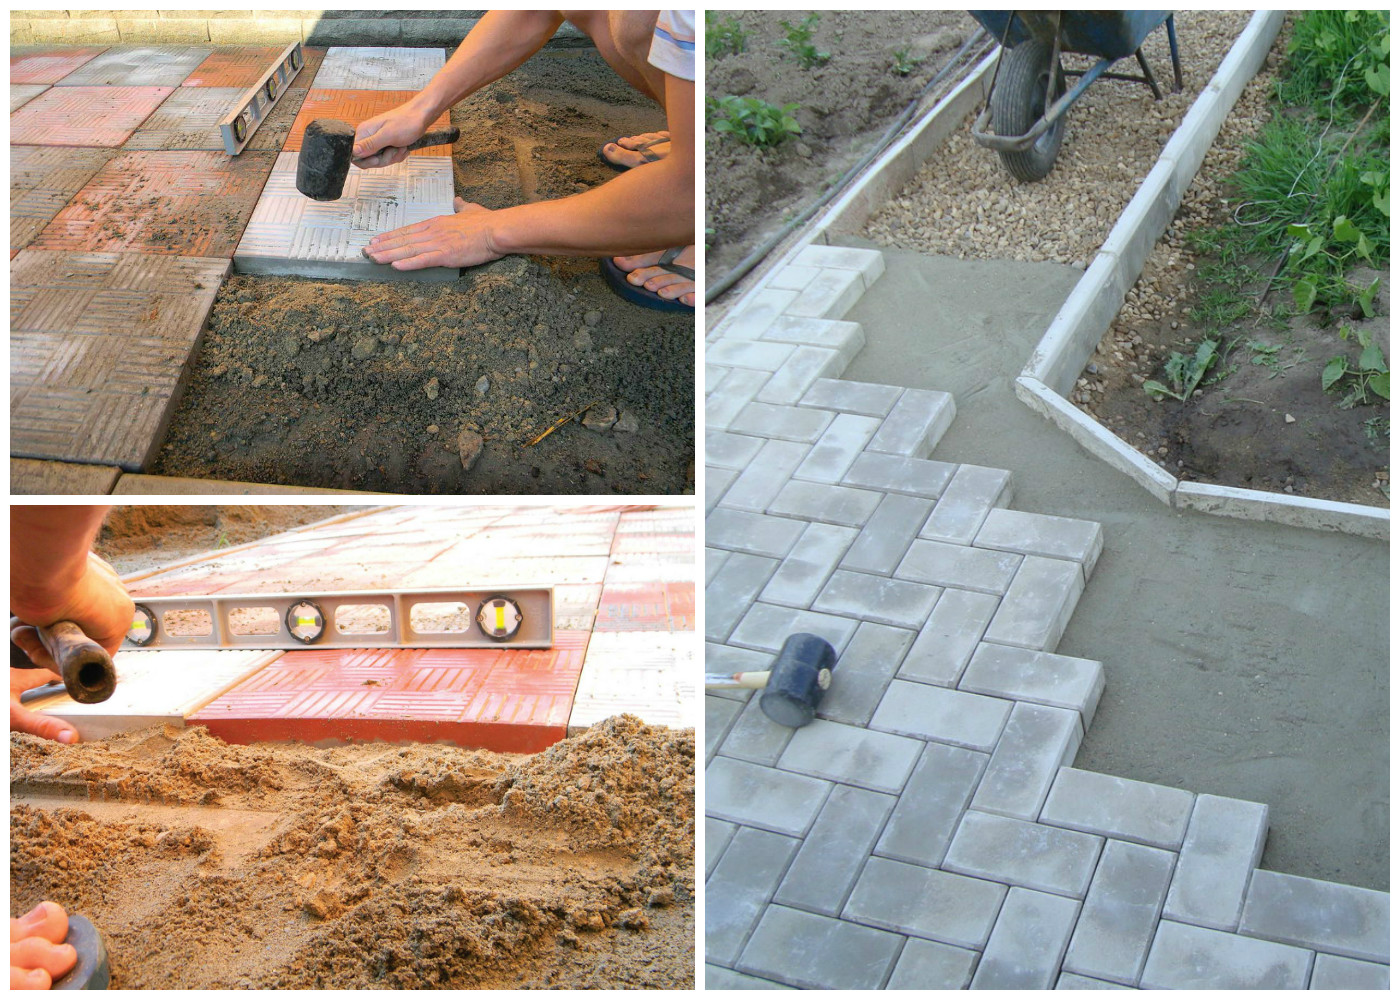 How to prepare a platform for laying pavings